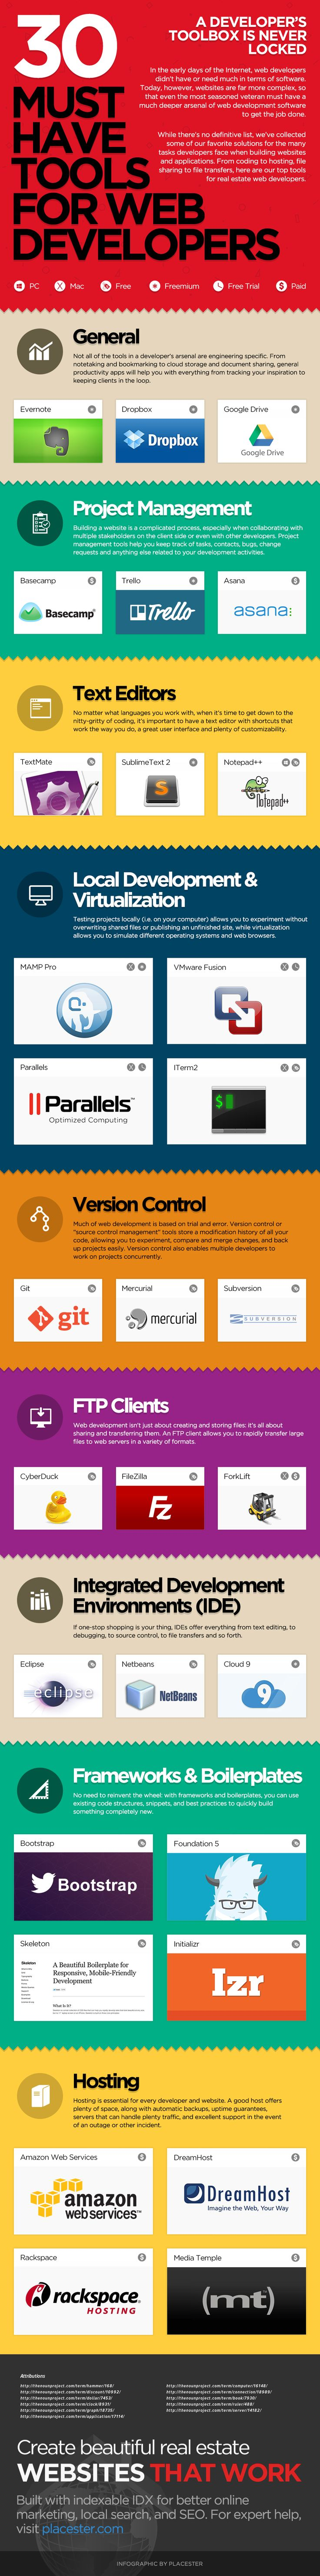 """30 Must Have Tools for Web Developers,"" web design and development infographic by Placester."